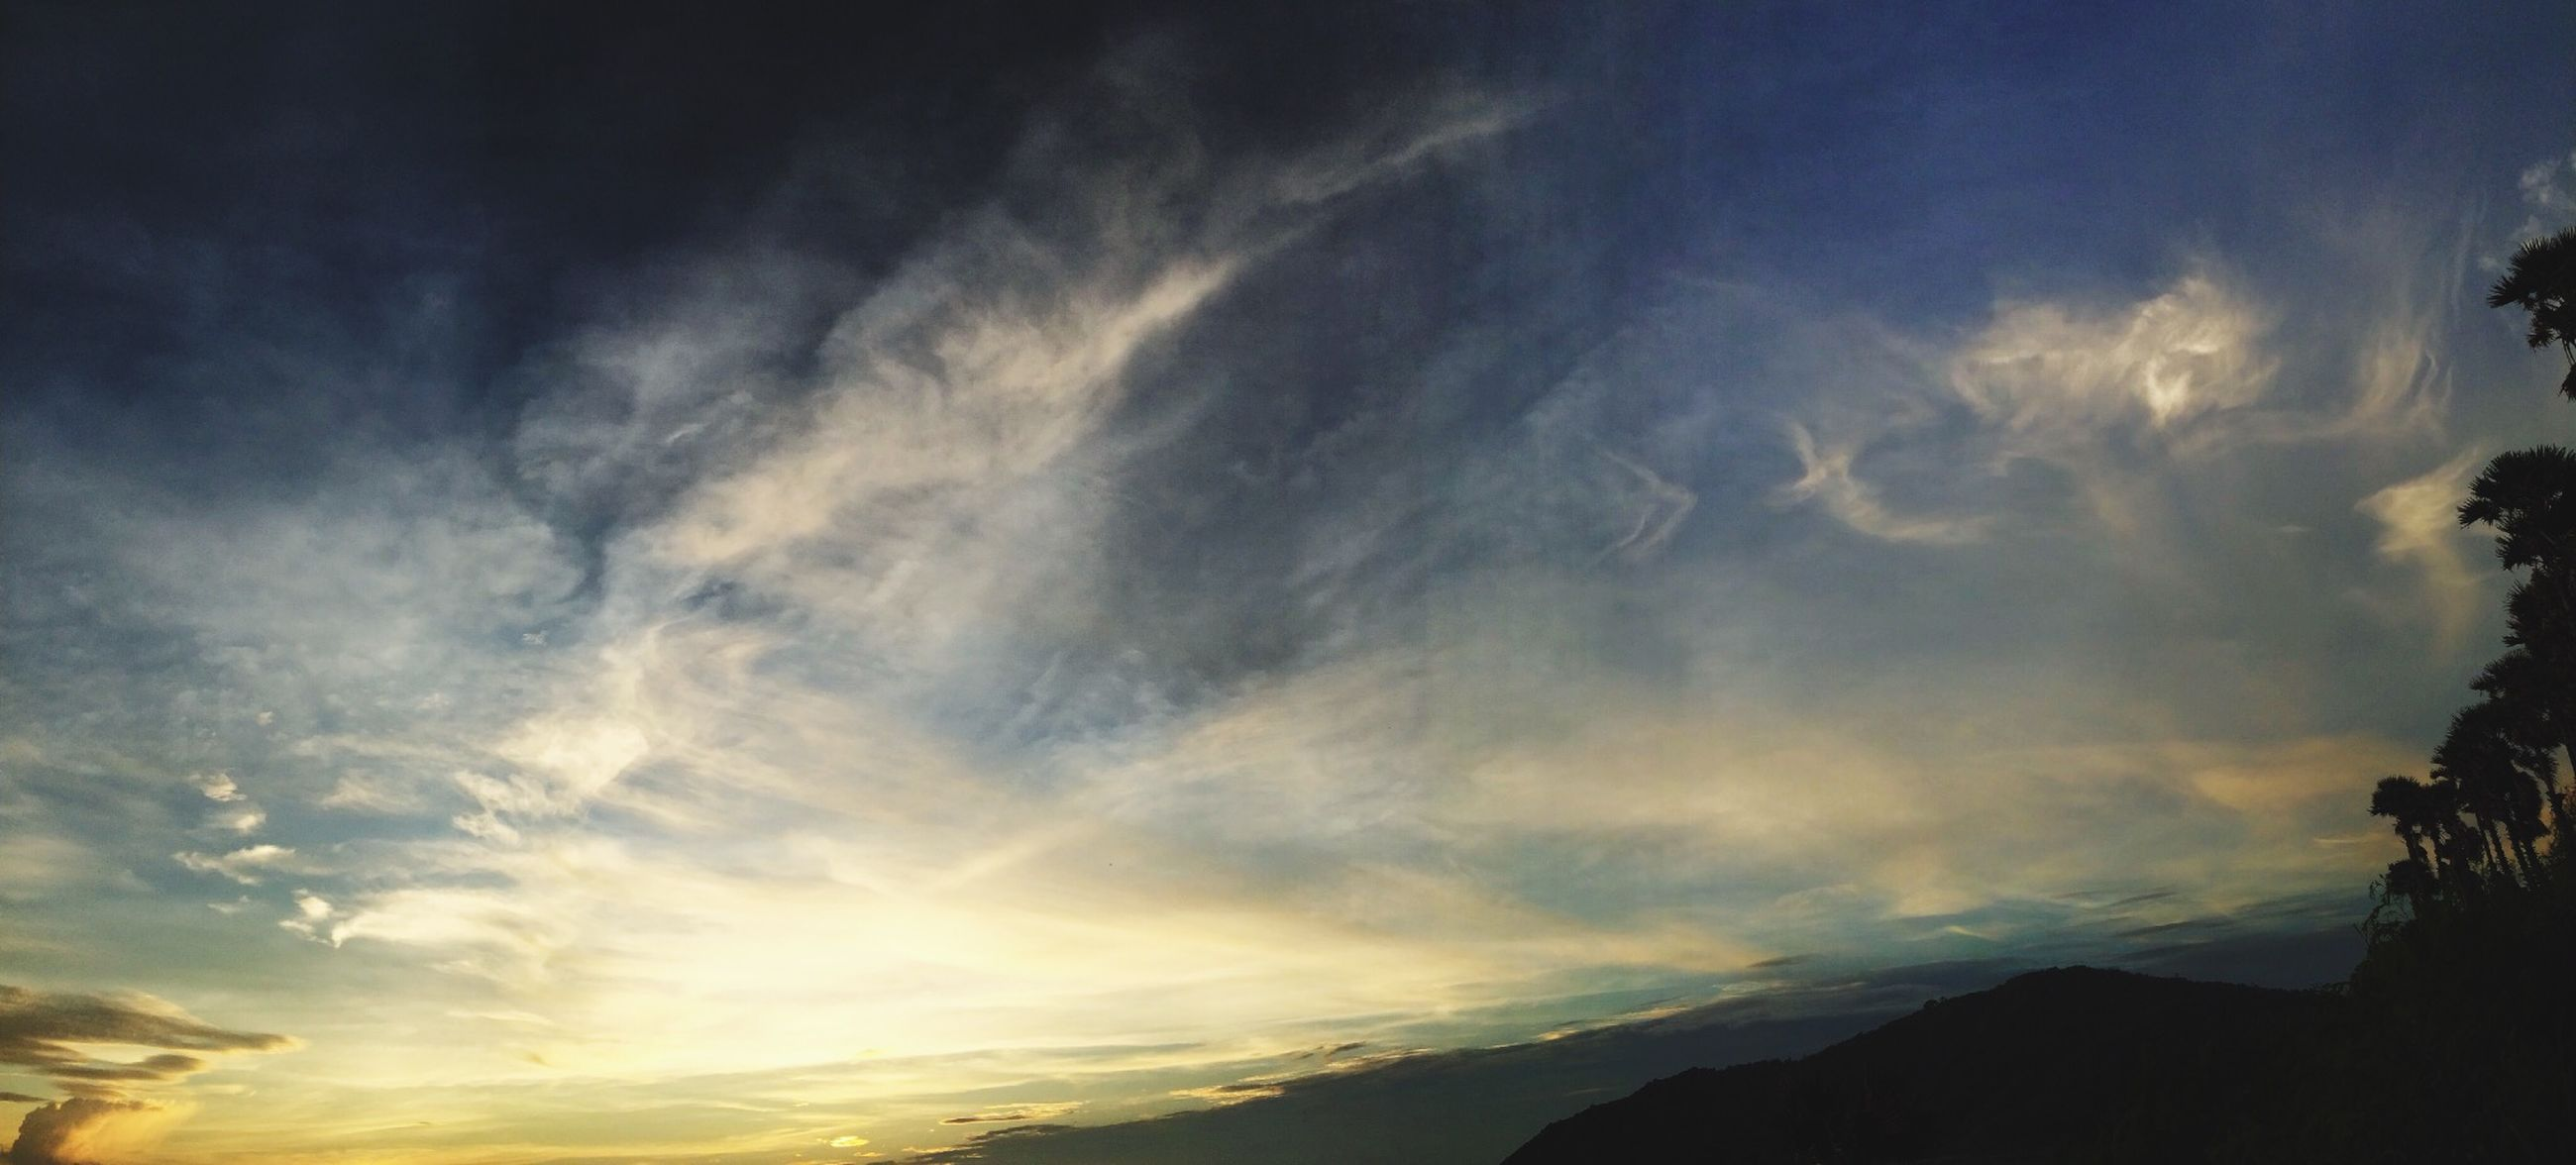 scenics, sky, tranquil scene, beauty in nature, tranquility, sunset, cloud - sky, silhouette, nature, landscape, idyllic, cloudy, cloud, mountain, dramatic sky, cloudscape, outdoors, weather, dusk, no people